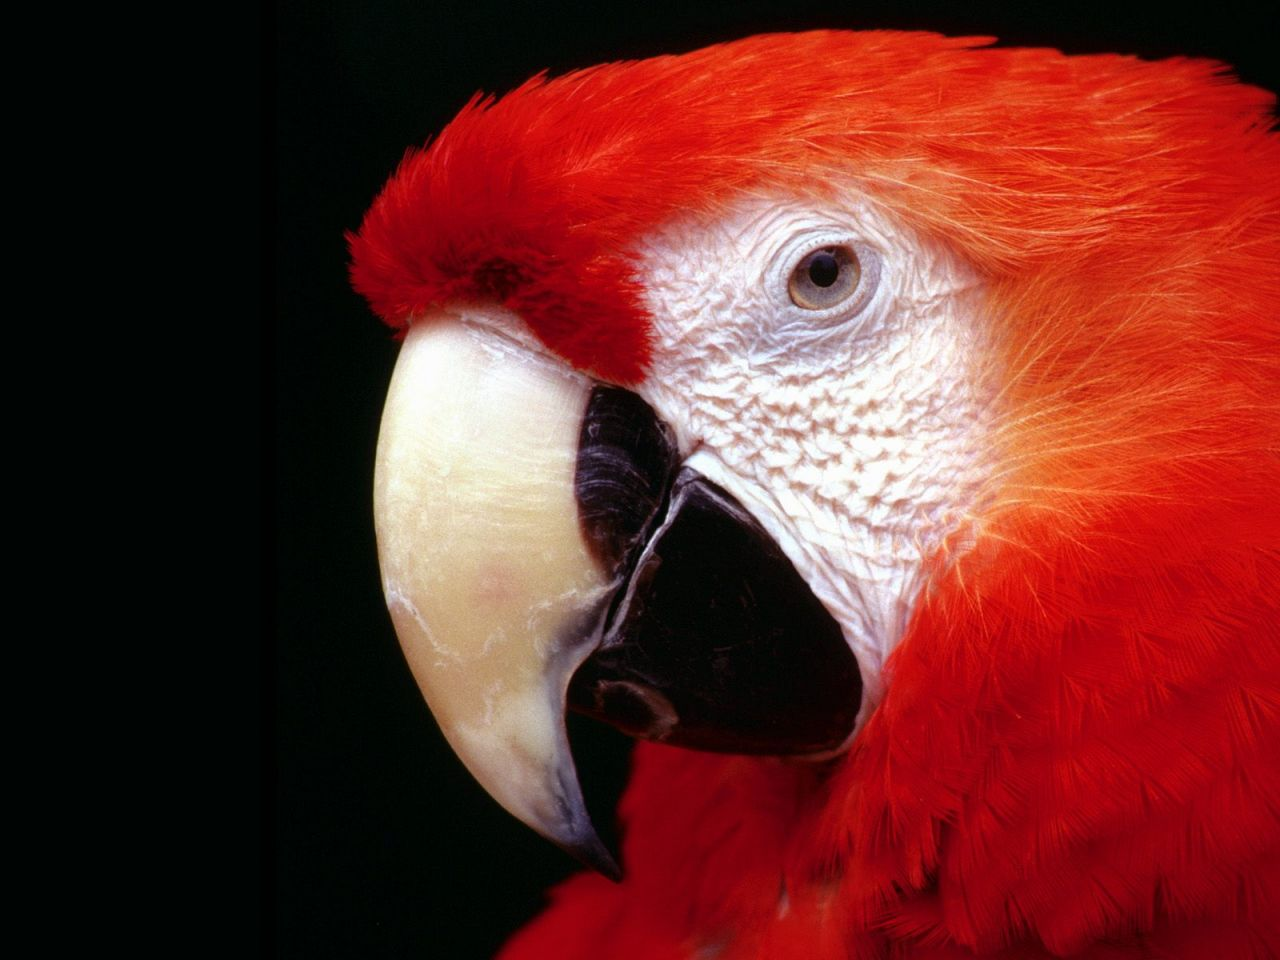 Red Macaw Face Close Up Wallpaper 1280x960